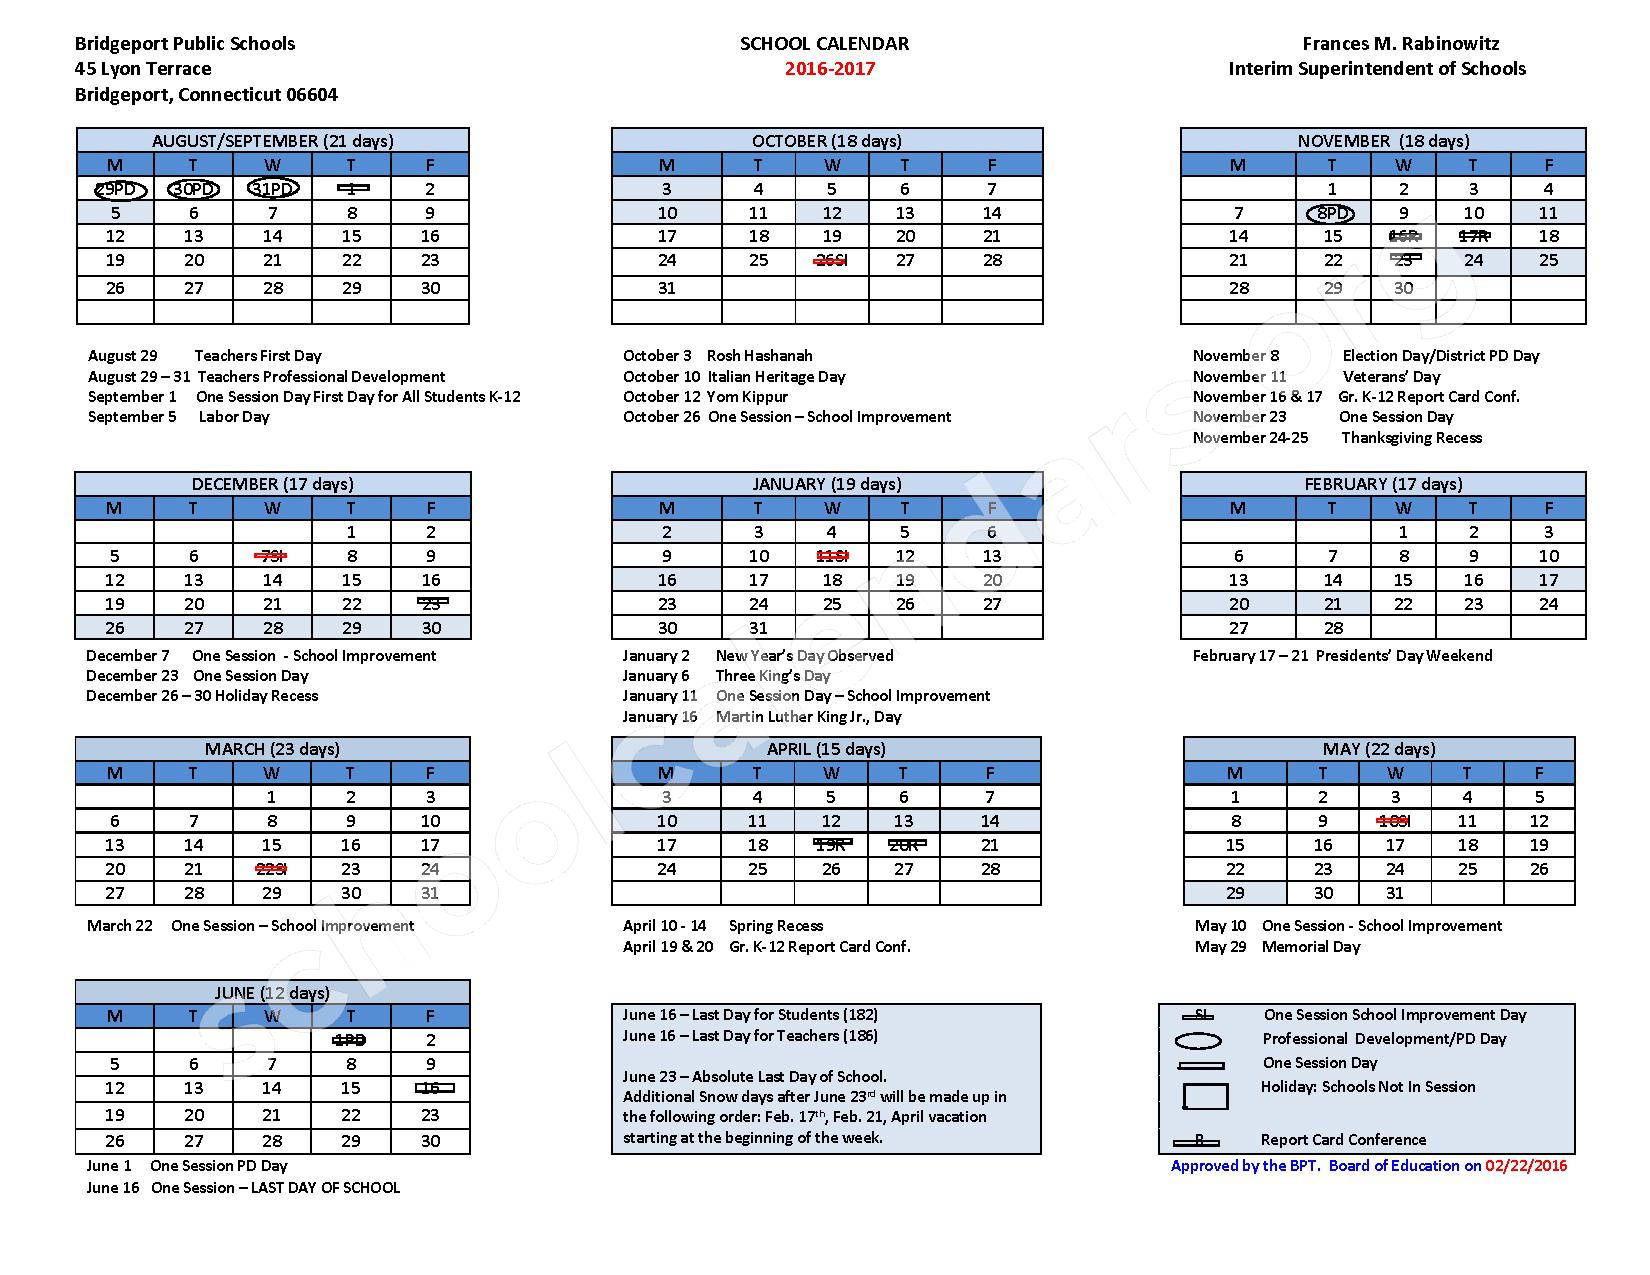 2016 - 2017 School Calendar – Bridgeport School District – page 1